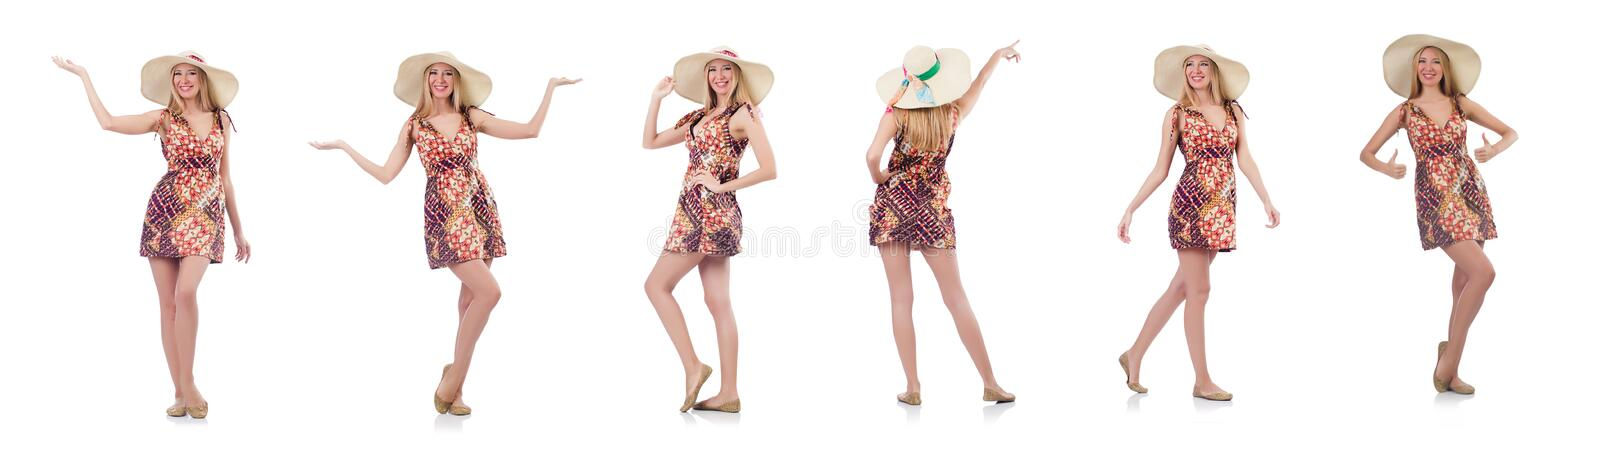 The beautiful dancing woman in summer dress handing hands isolated on white royalty free stock images